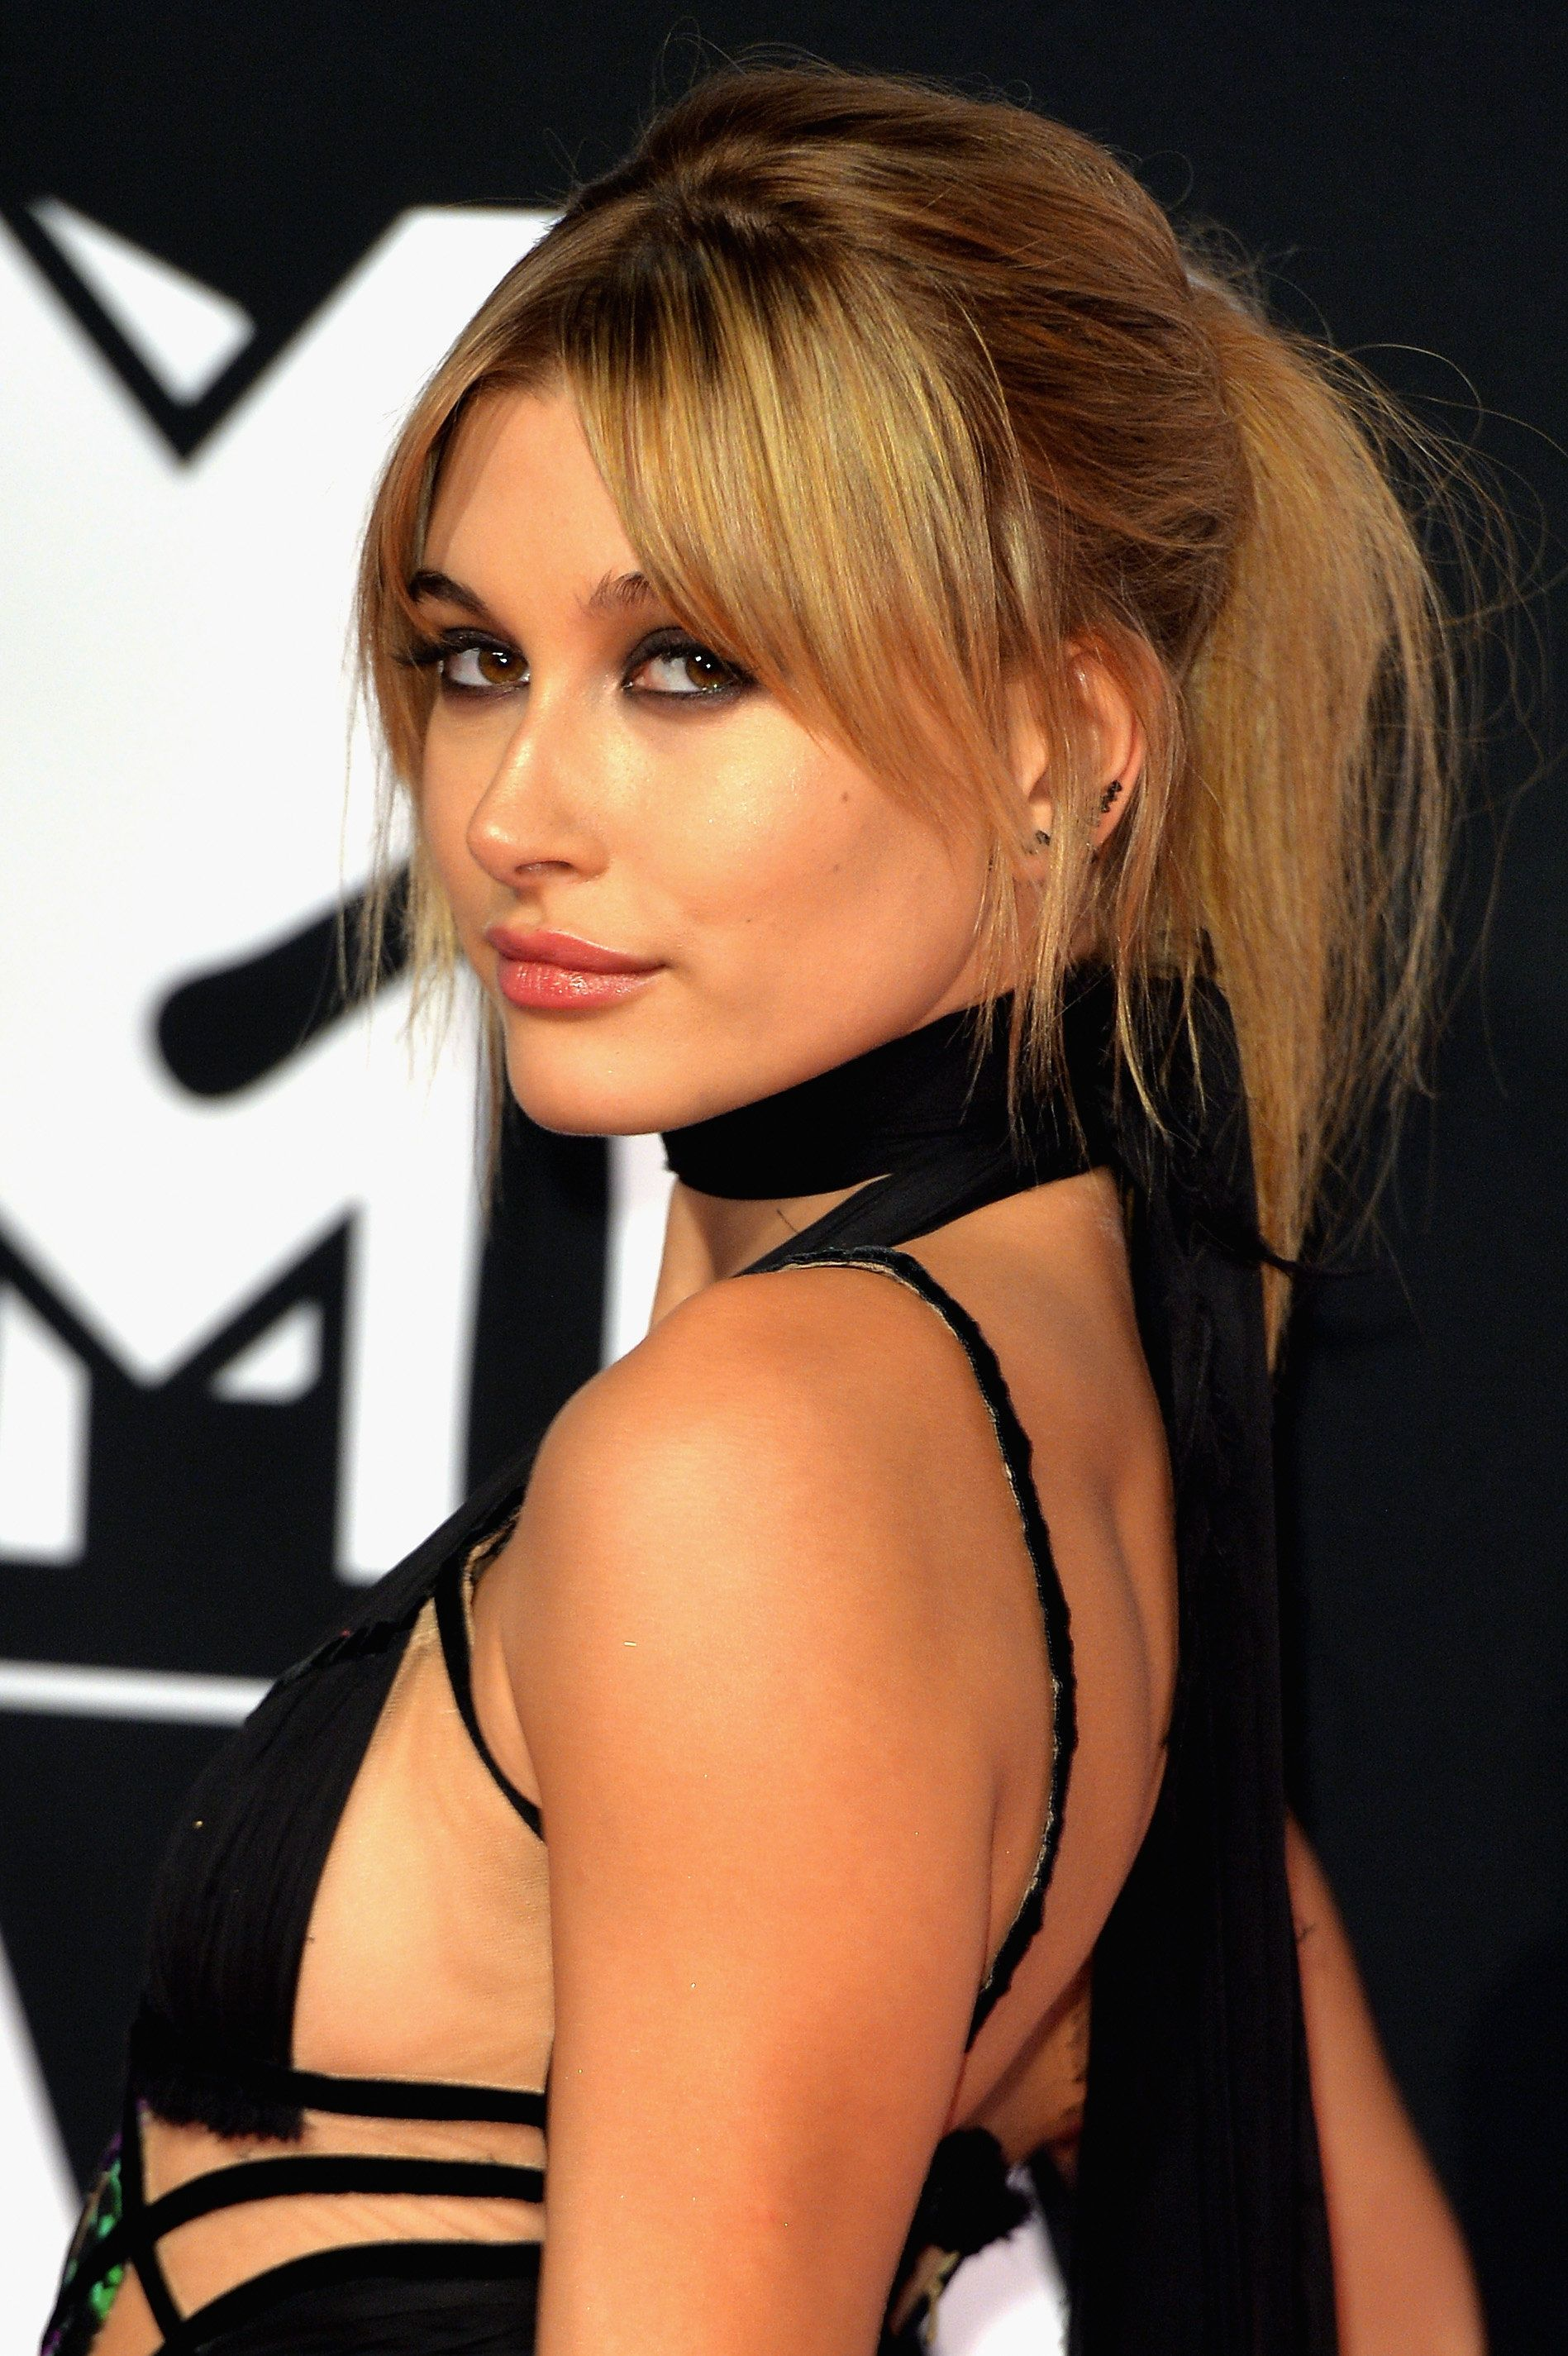 MILAN, ITALY - OCTOBER 25:  Hailey Baldwin attends the MTV EMA's 2015 at the Mediolanum Forum on October 25, 2015 in Milan, Italy.  (Photo by Anthony Harvey/Getty Images for MTV)